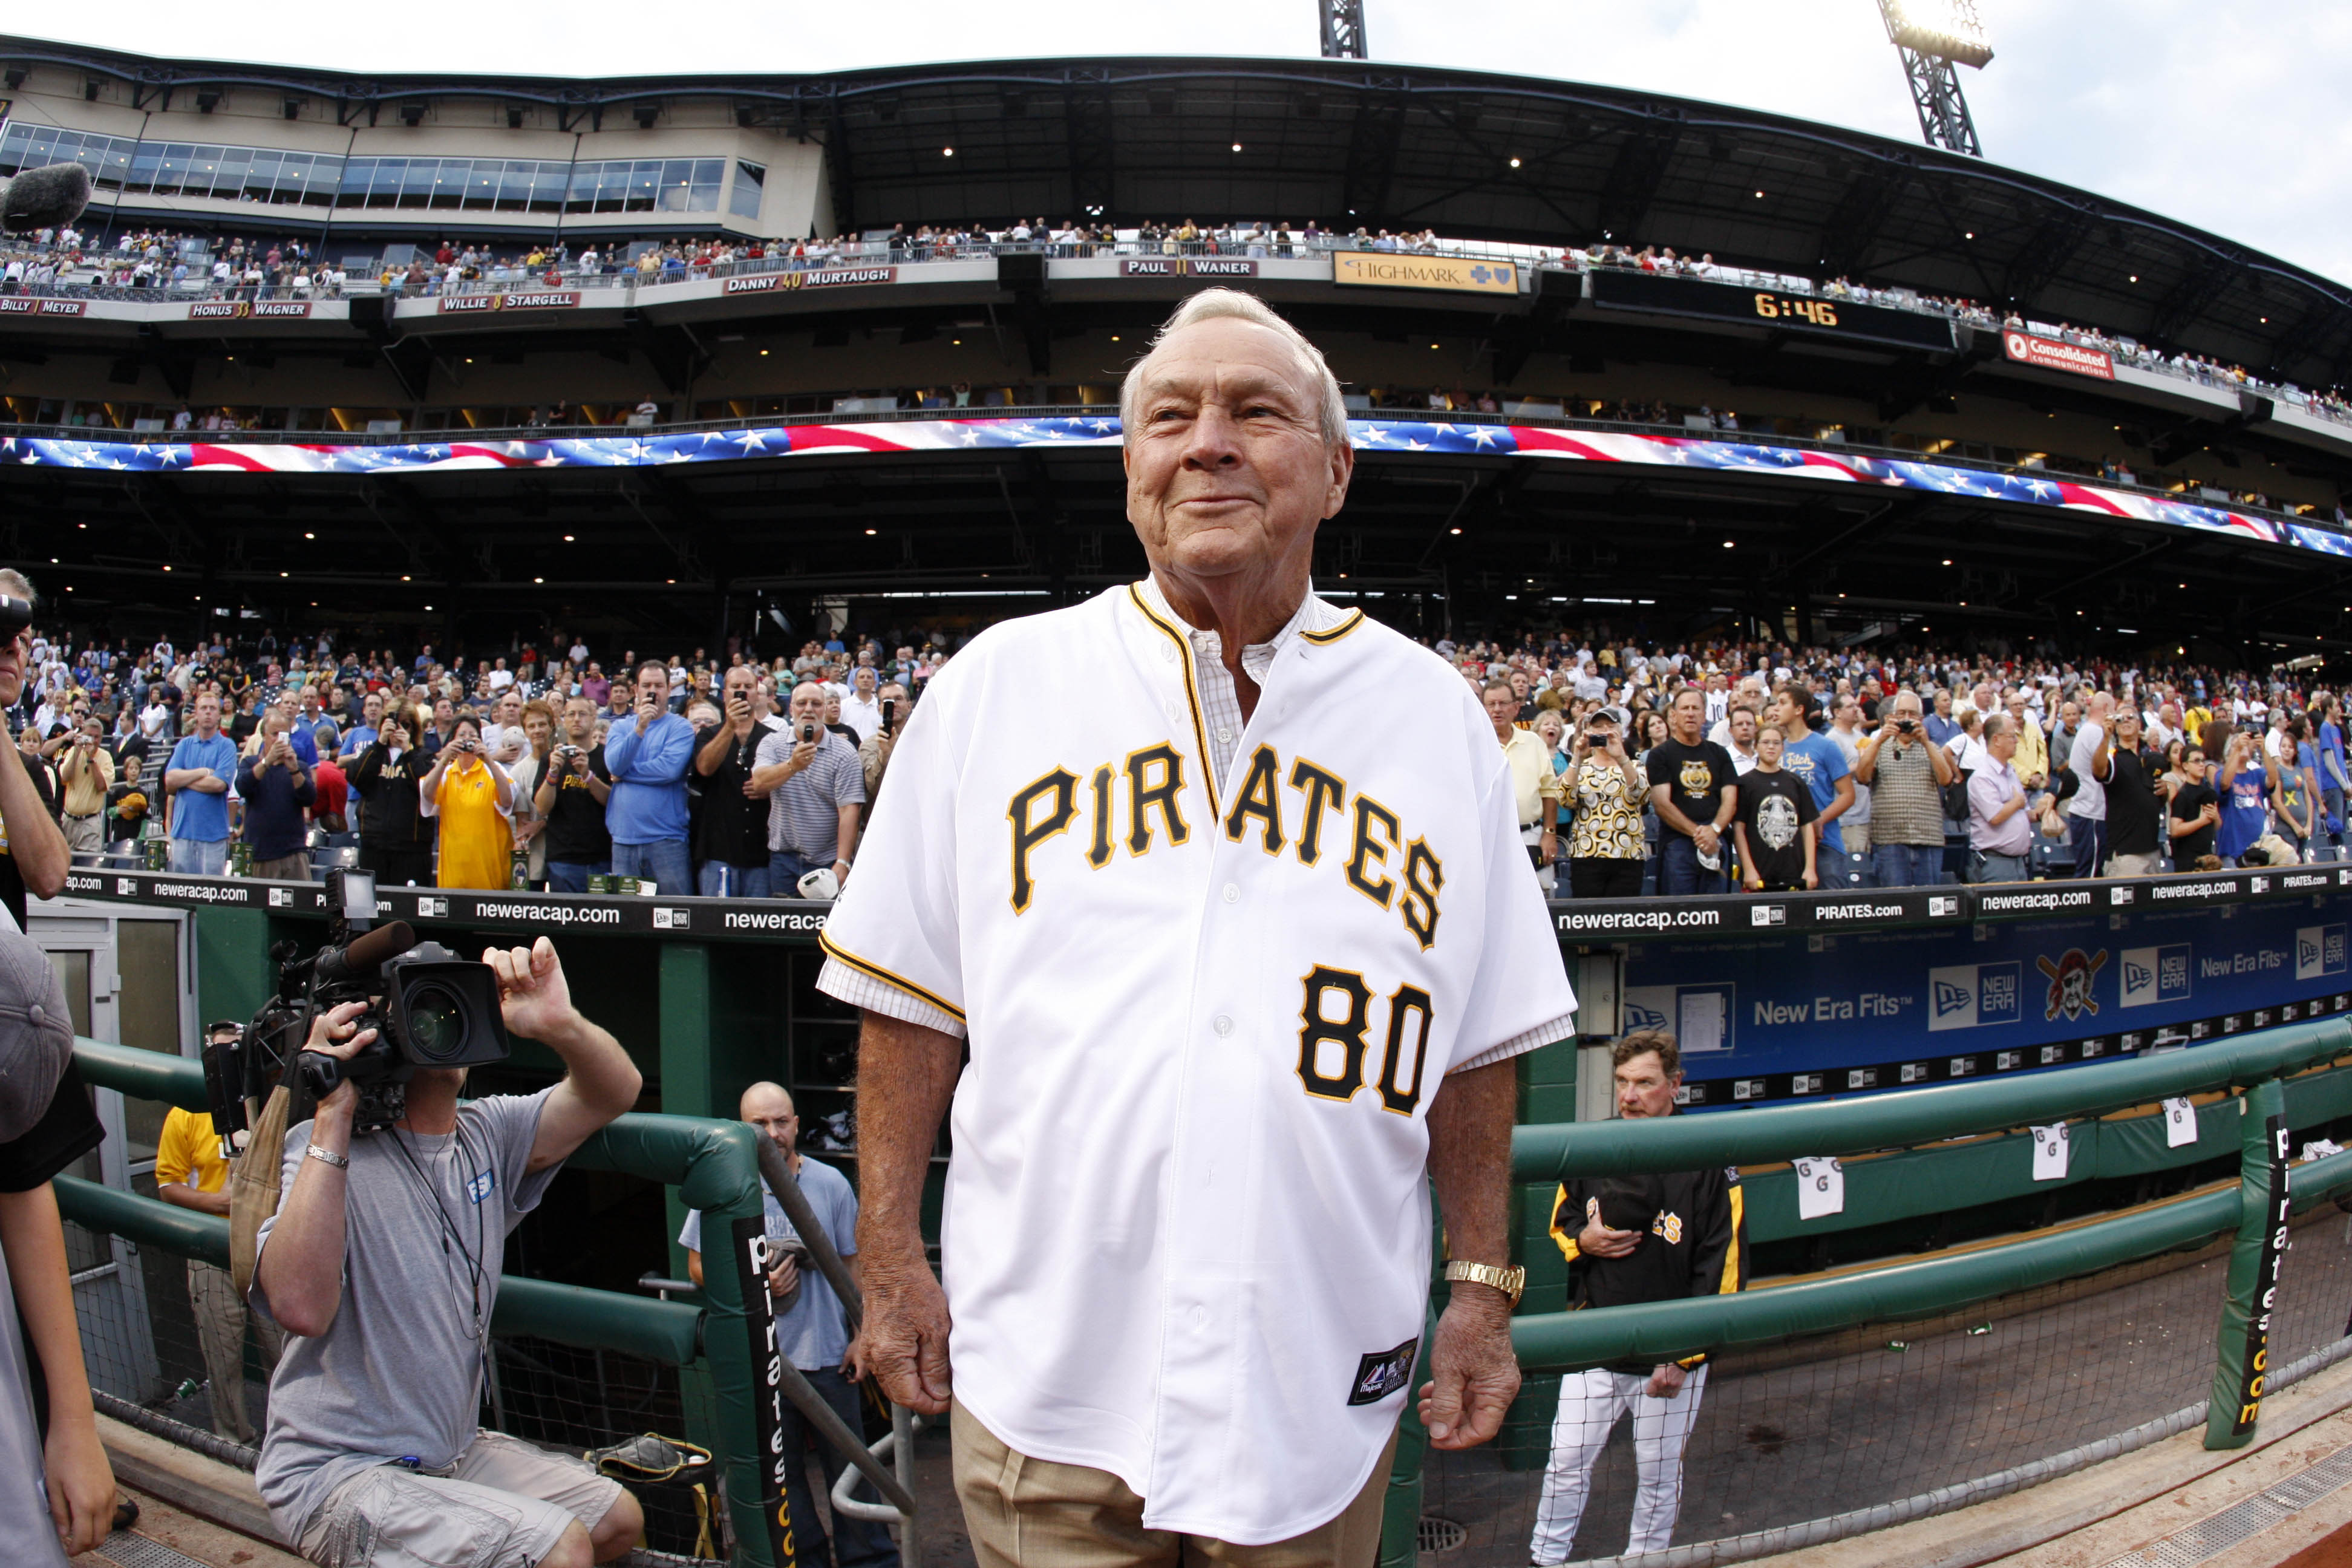 Golfing legend Arnold Palmer arrives on the field  before a baseball game between the Pittsburgh Pirates and Chicago Cubs in Pittsburgh, on Sept. 8, 2009.